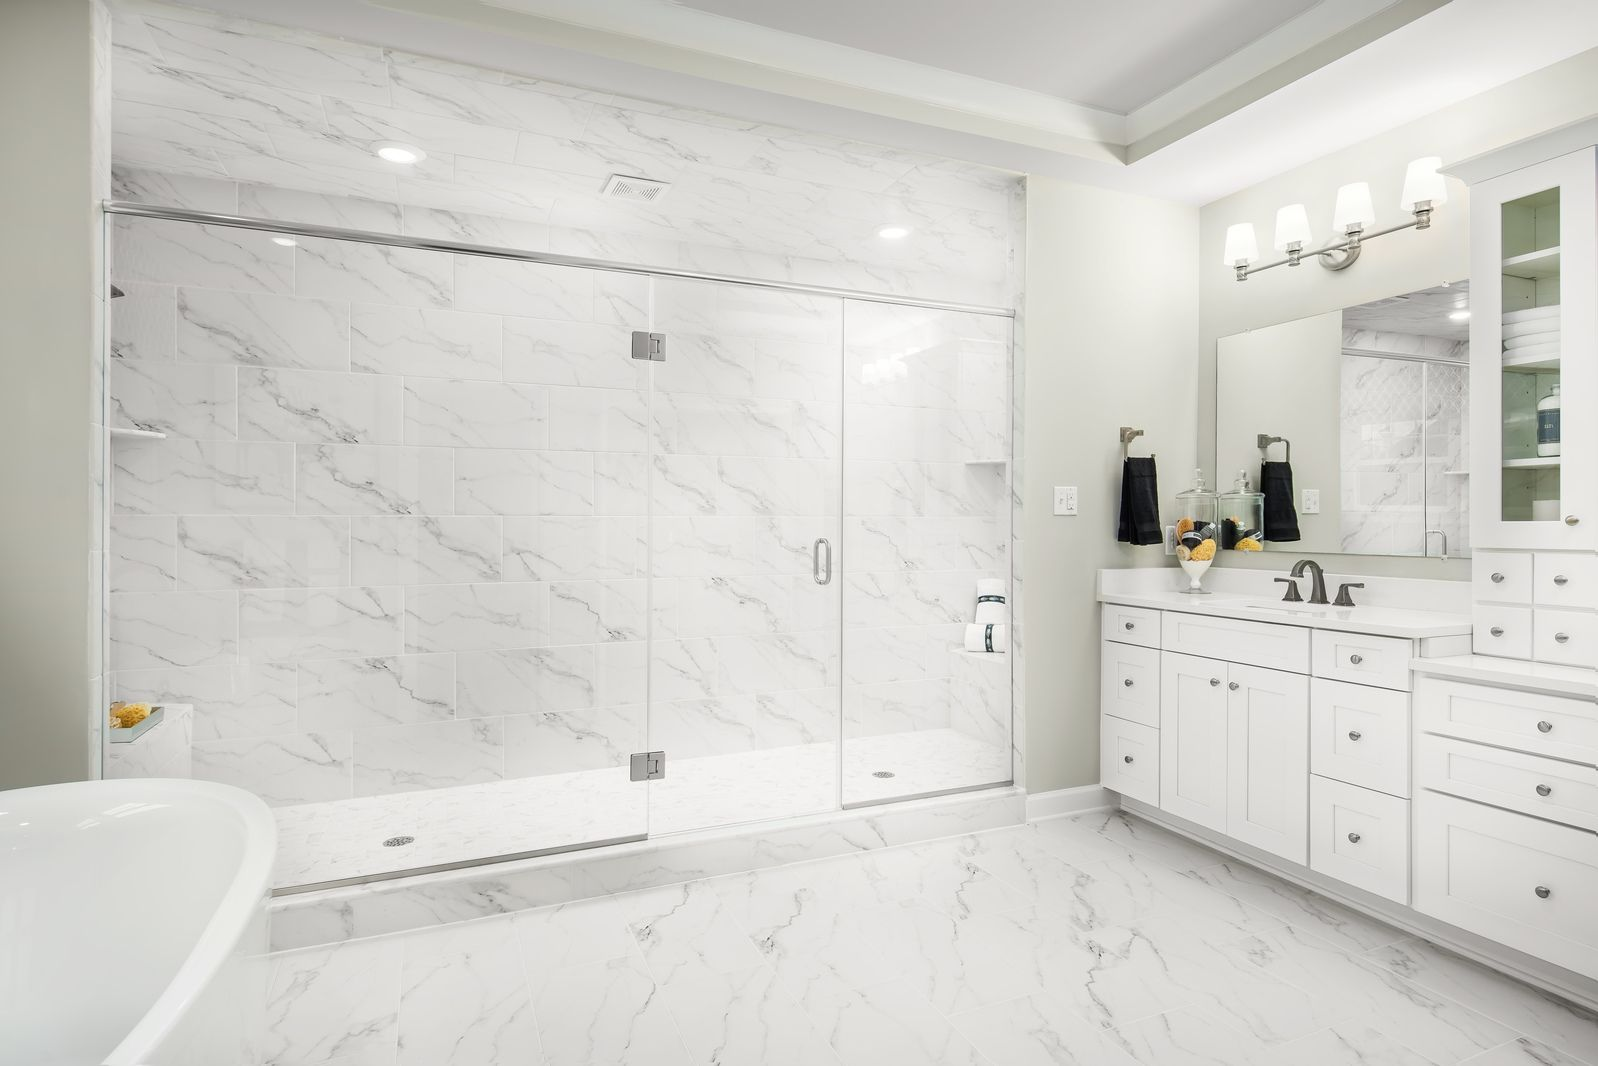 Bathroom featured in the Clifton Park II By NVHomes in Washington, VA